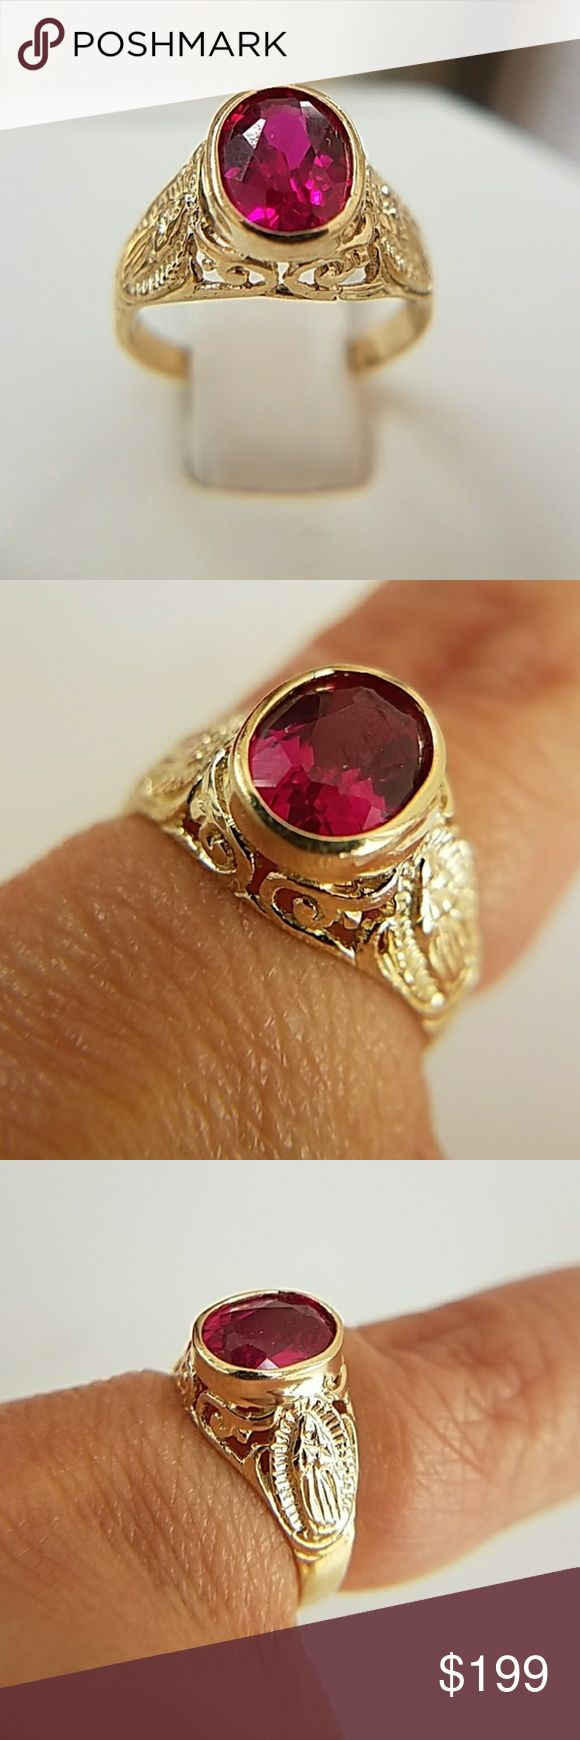 14k Solid Yellow Gold Ruby Religious Filigree Ring Dainty 14k Solid Real Yellow Gold Synthetic Ruby Filigree Engagement Promise Ring . Available in sizes 3,4,5,6,7 only Item#RG2261-2.63-0076 Jewelry Rings